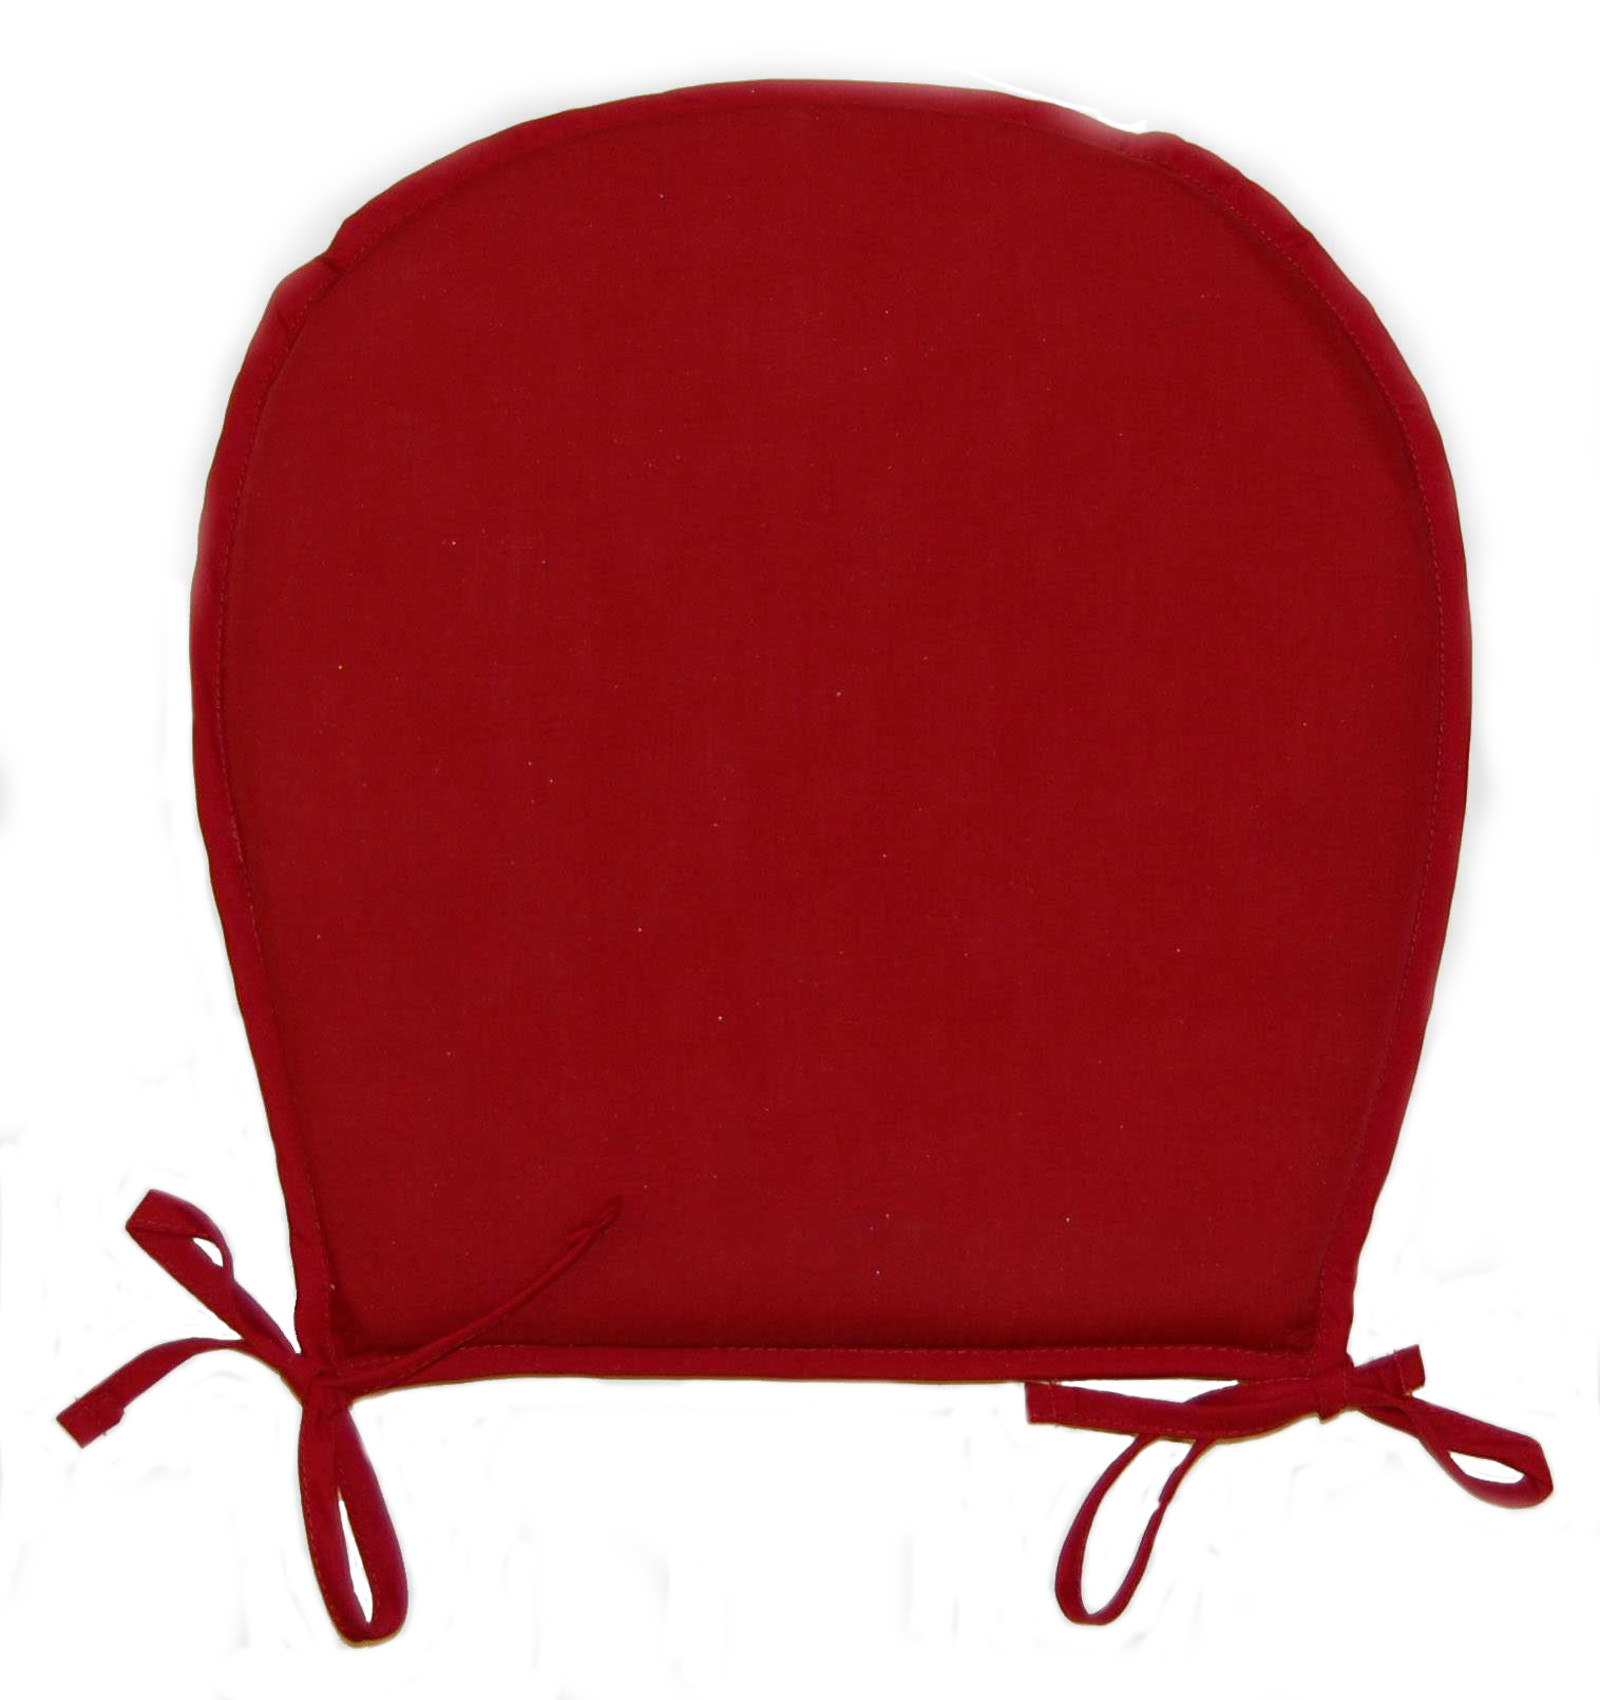 round cushions for outdoor chairs porch plain seat pad garden dining kitchen chair